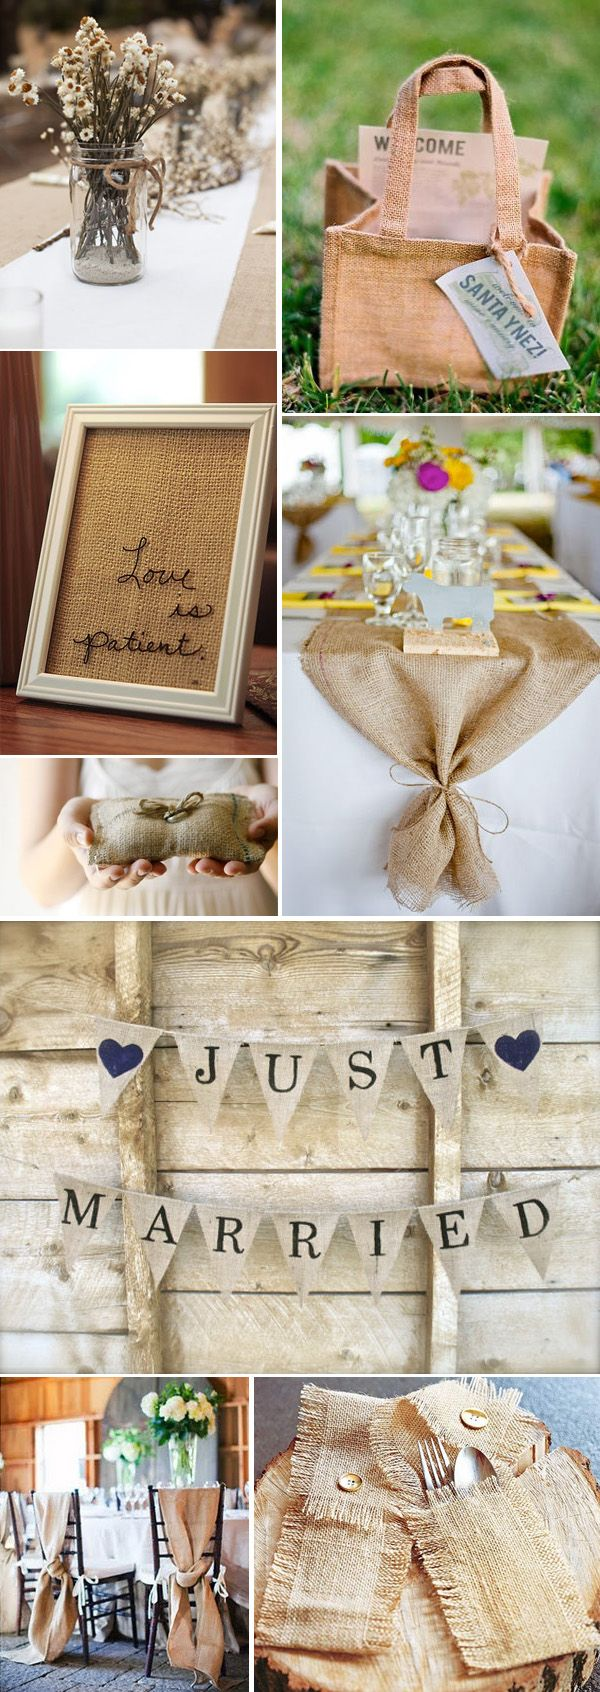 lots of farm wedding burlap uses ... Maybe for chairs? And they have mason jar idea